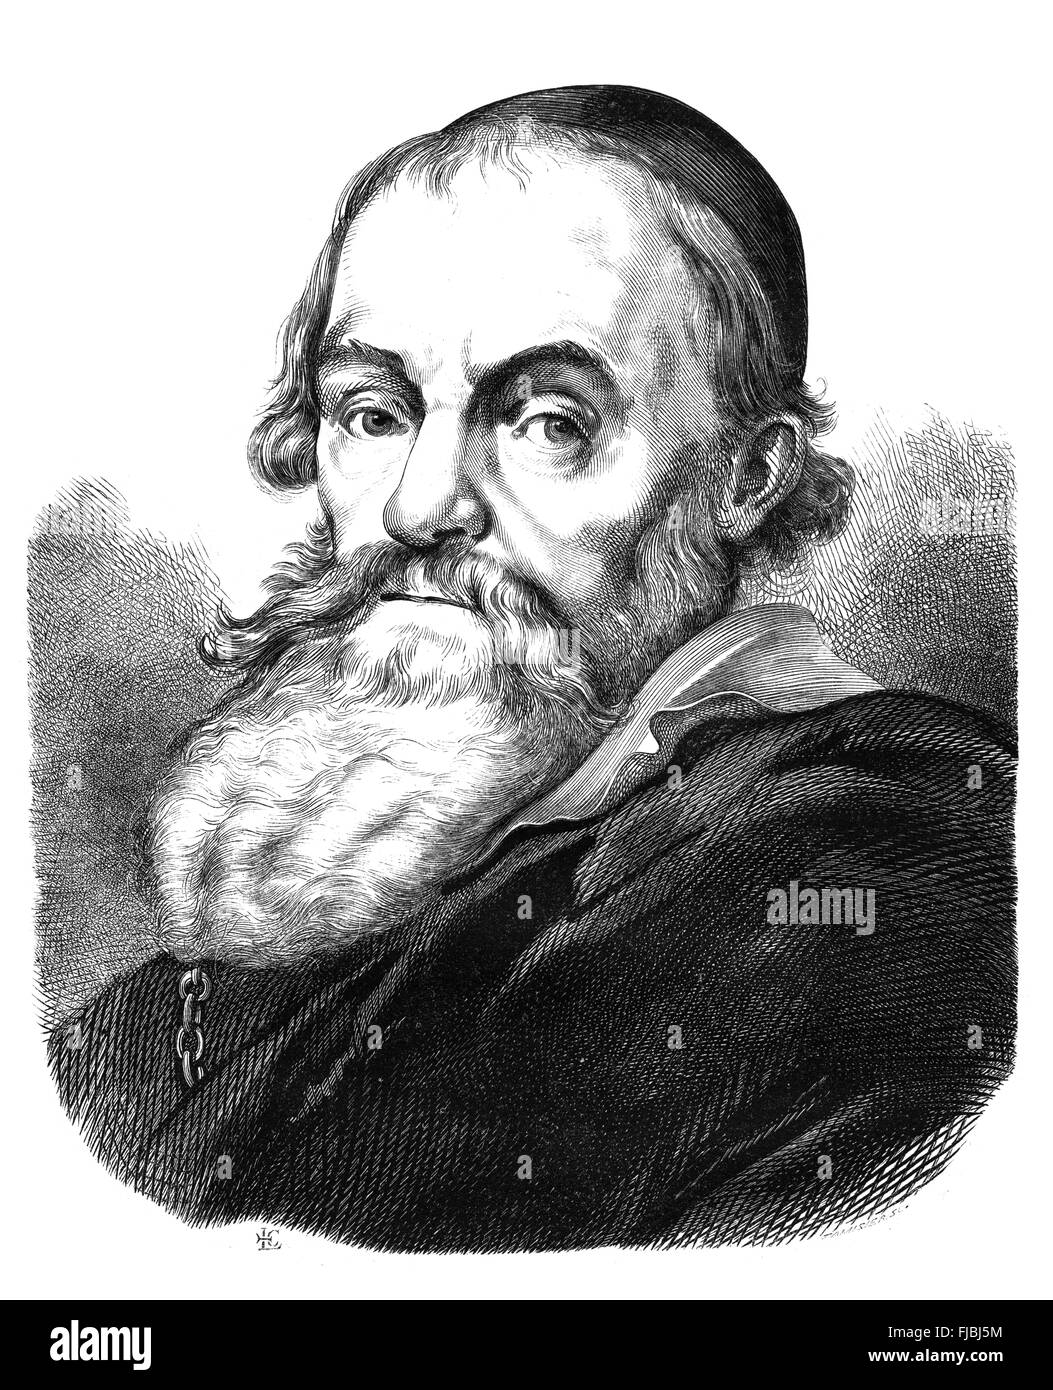 Hendrick Goltzius (1558-1617), German-born Dutch printmaker, draftsman, and painter. Engraving from Magasin Pittoresqie, - Stock Image